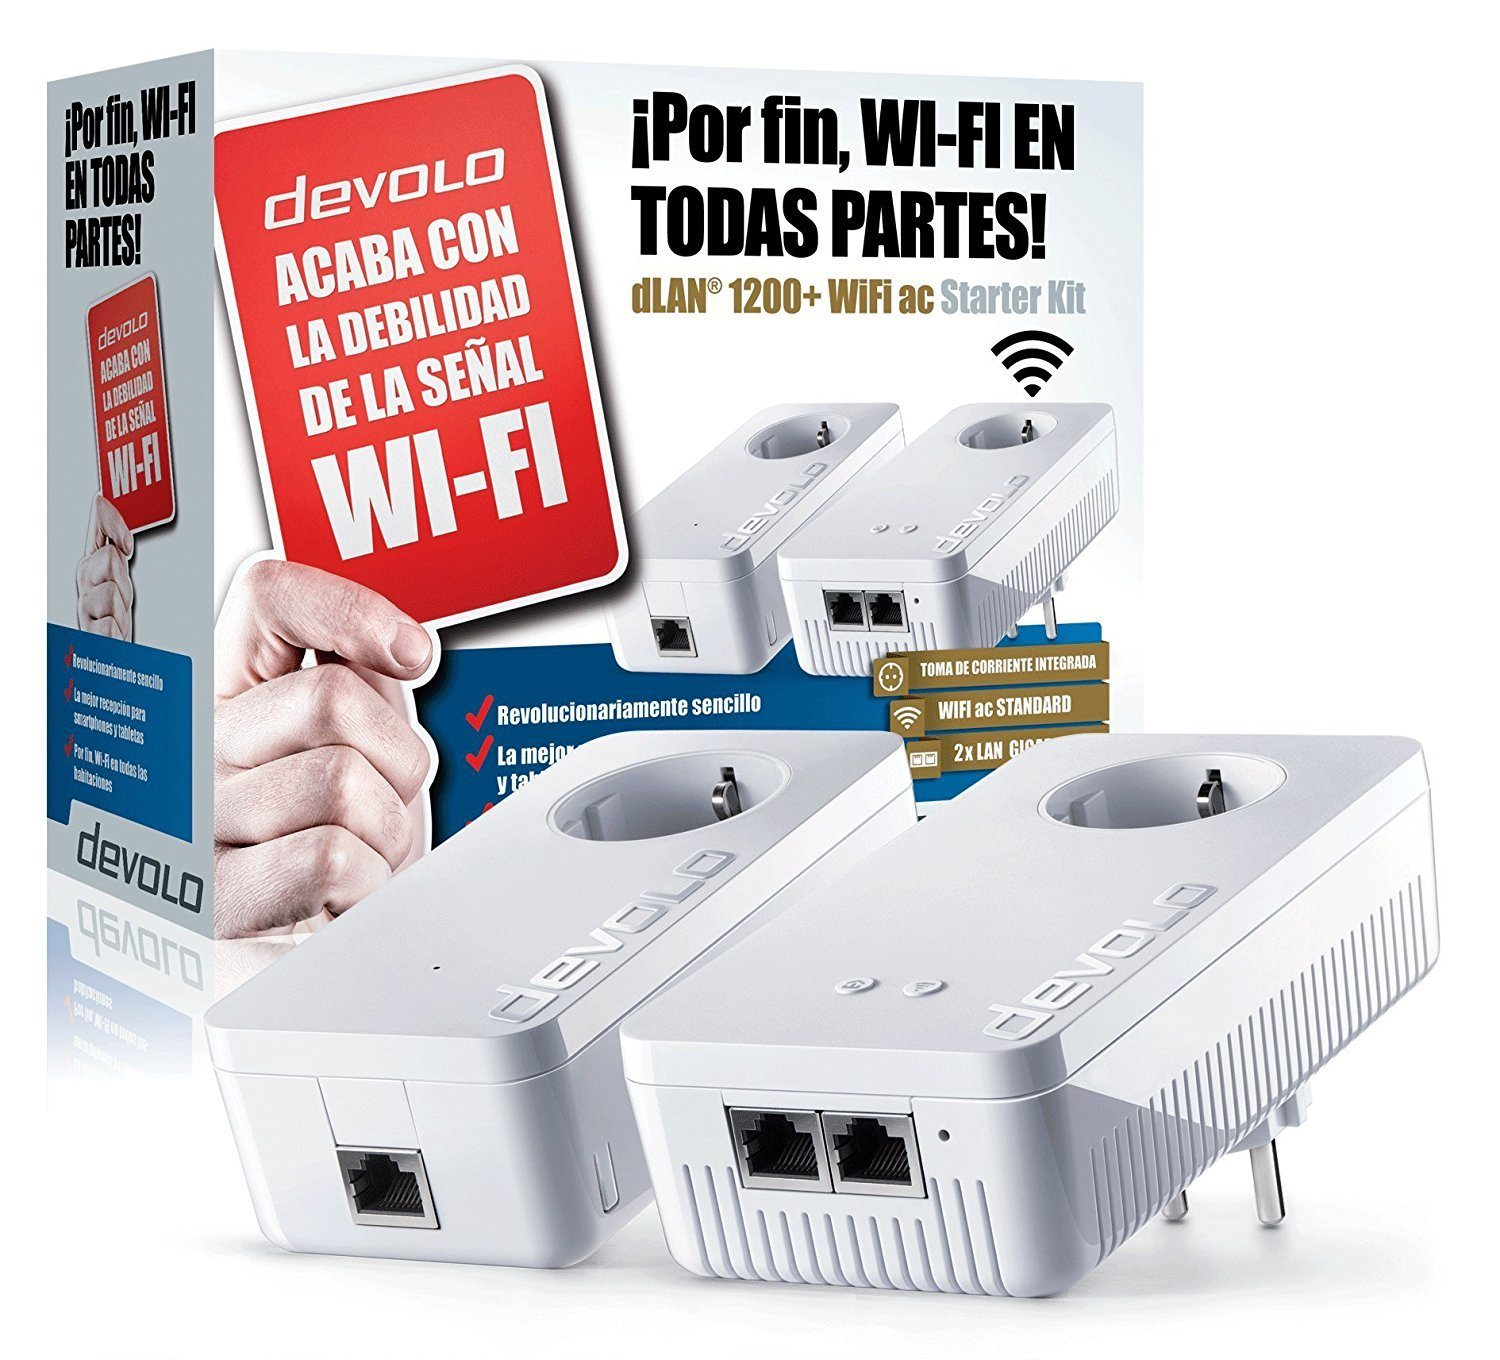 test du kit cpl devolo dlan 1200 wifi ac maison et domotique. Black Bedroom Furniture Sets. Home Design Ideas